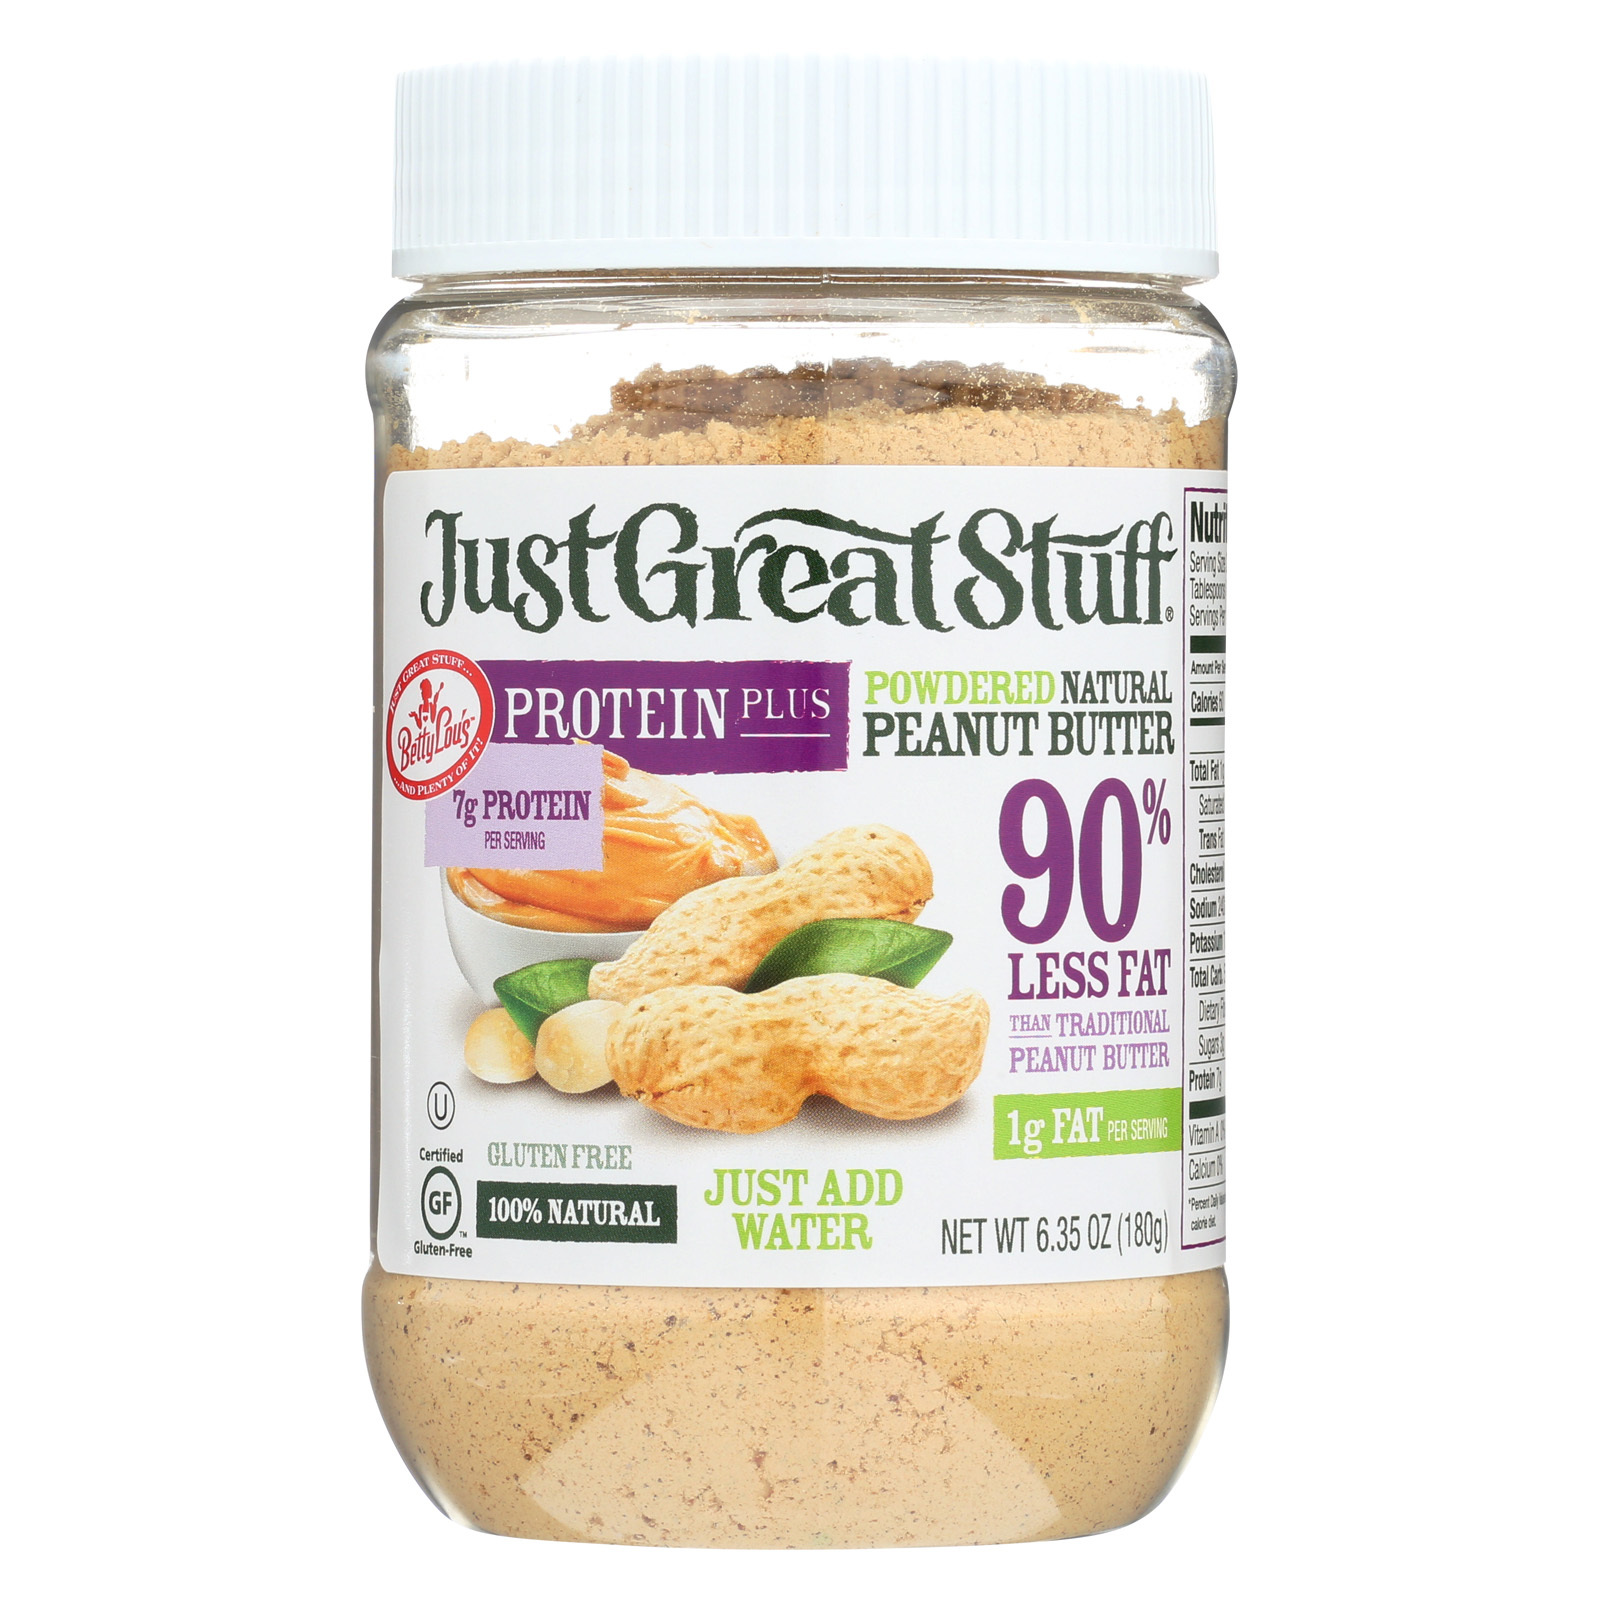 Just Great Stuff Powdered Peanut Butter - Protein Plus - Case of 12 - 6.35 oz.